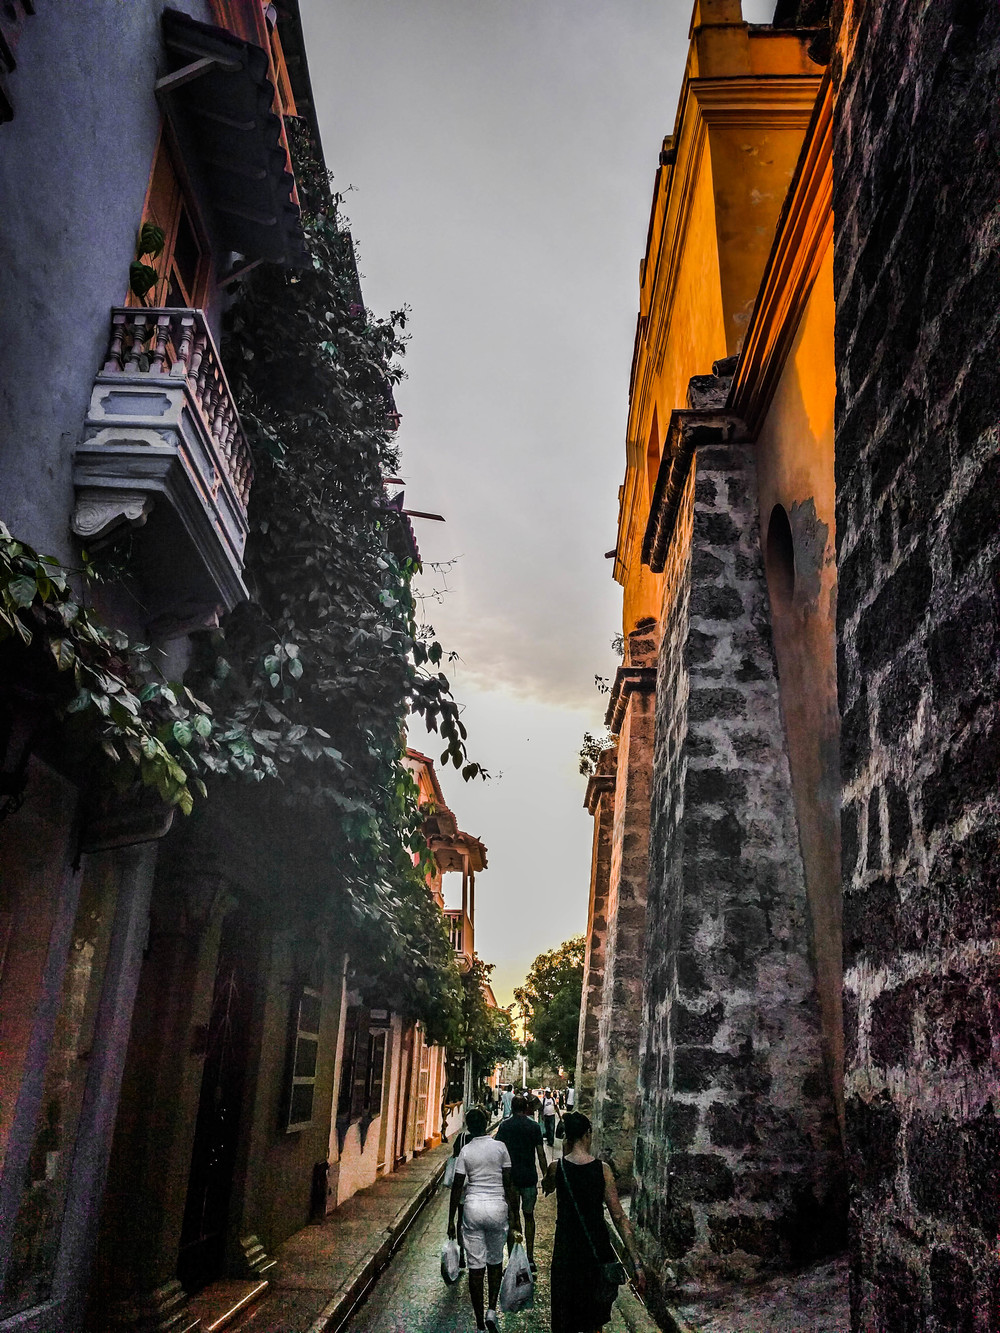 Cartagena- walking to wall buildings on each side RTW.jpg